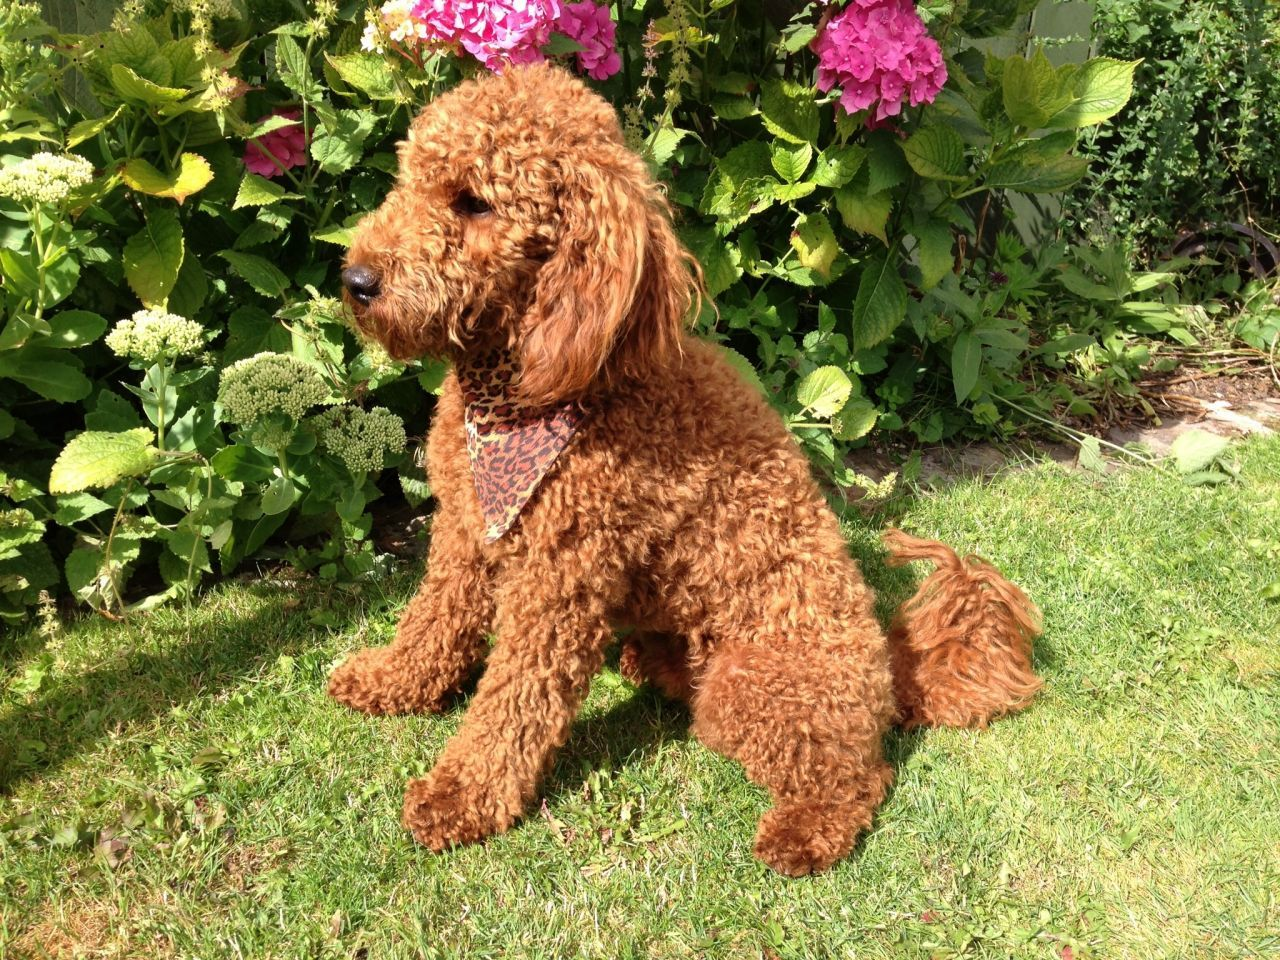 Fox Red Kc Reg Miniature Poodle Stud Dog 520a84f3efec7 Jpg 1280